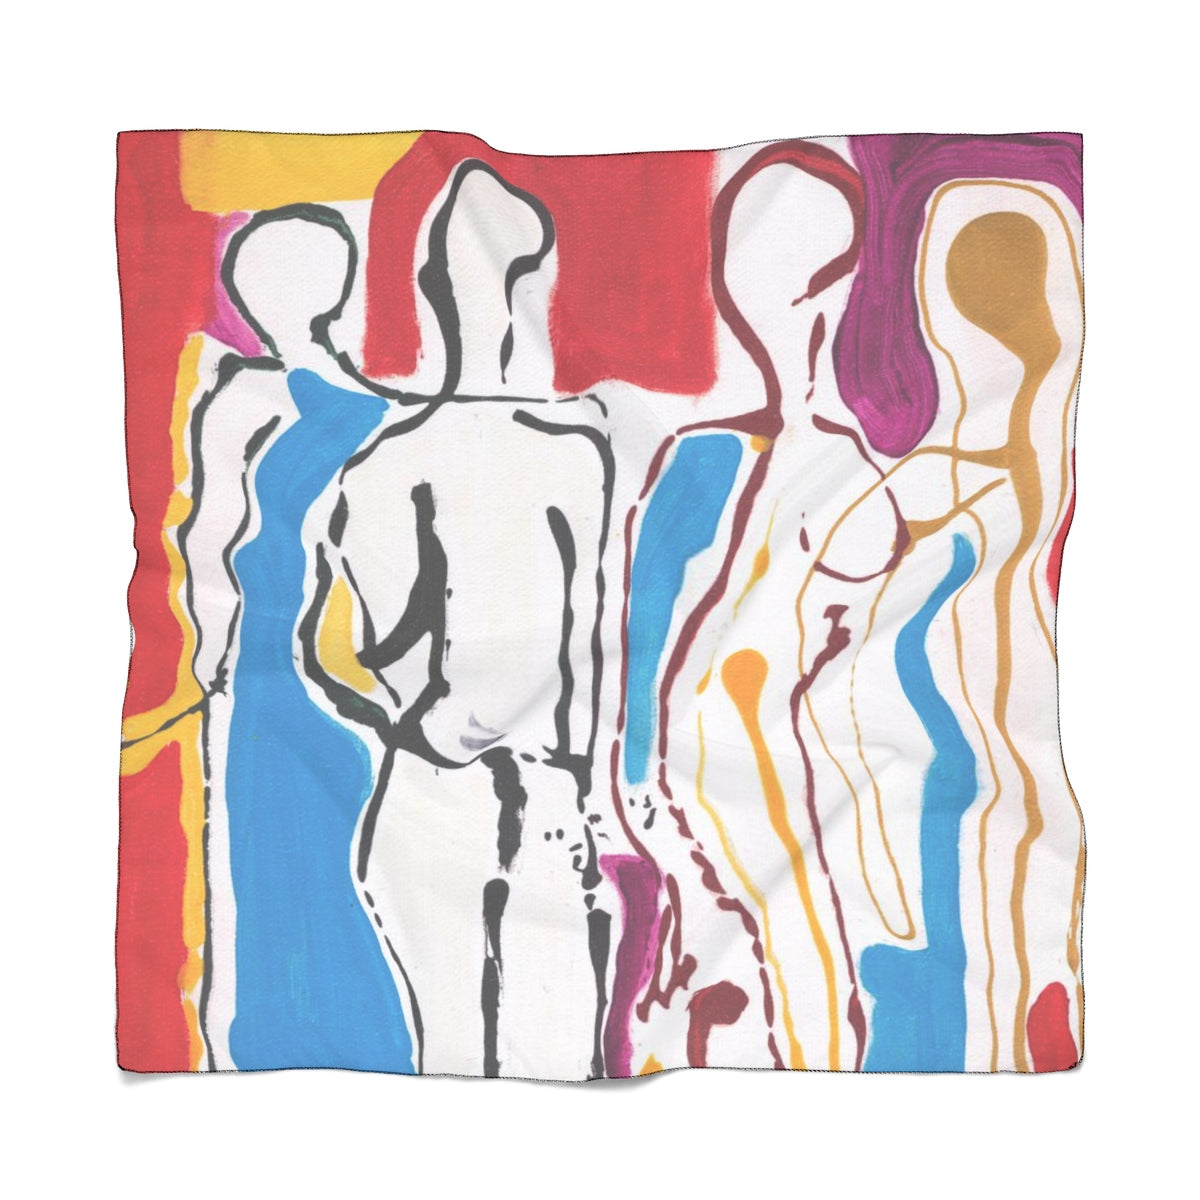 "4 BODIES Poly VOILE Scarf  25"" x 25"""